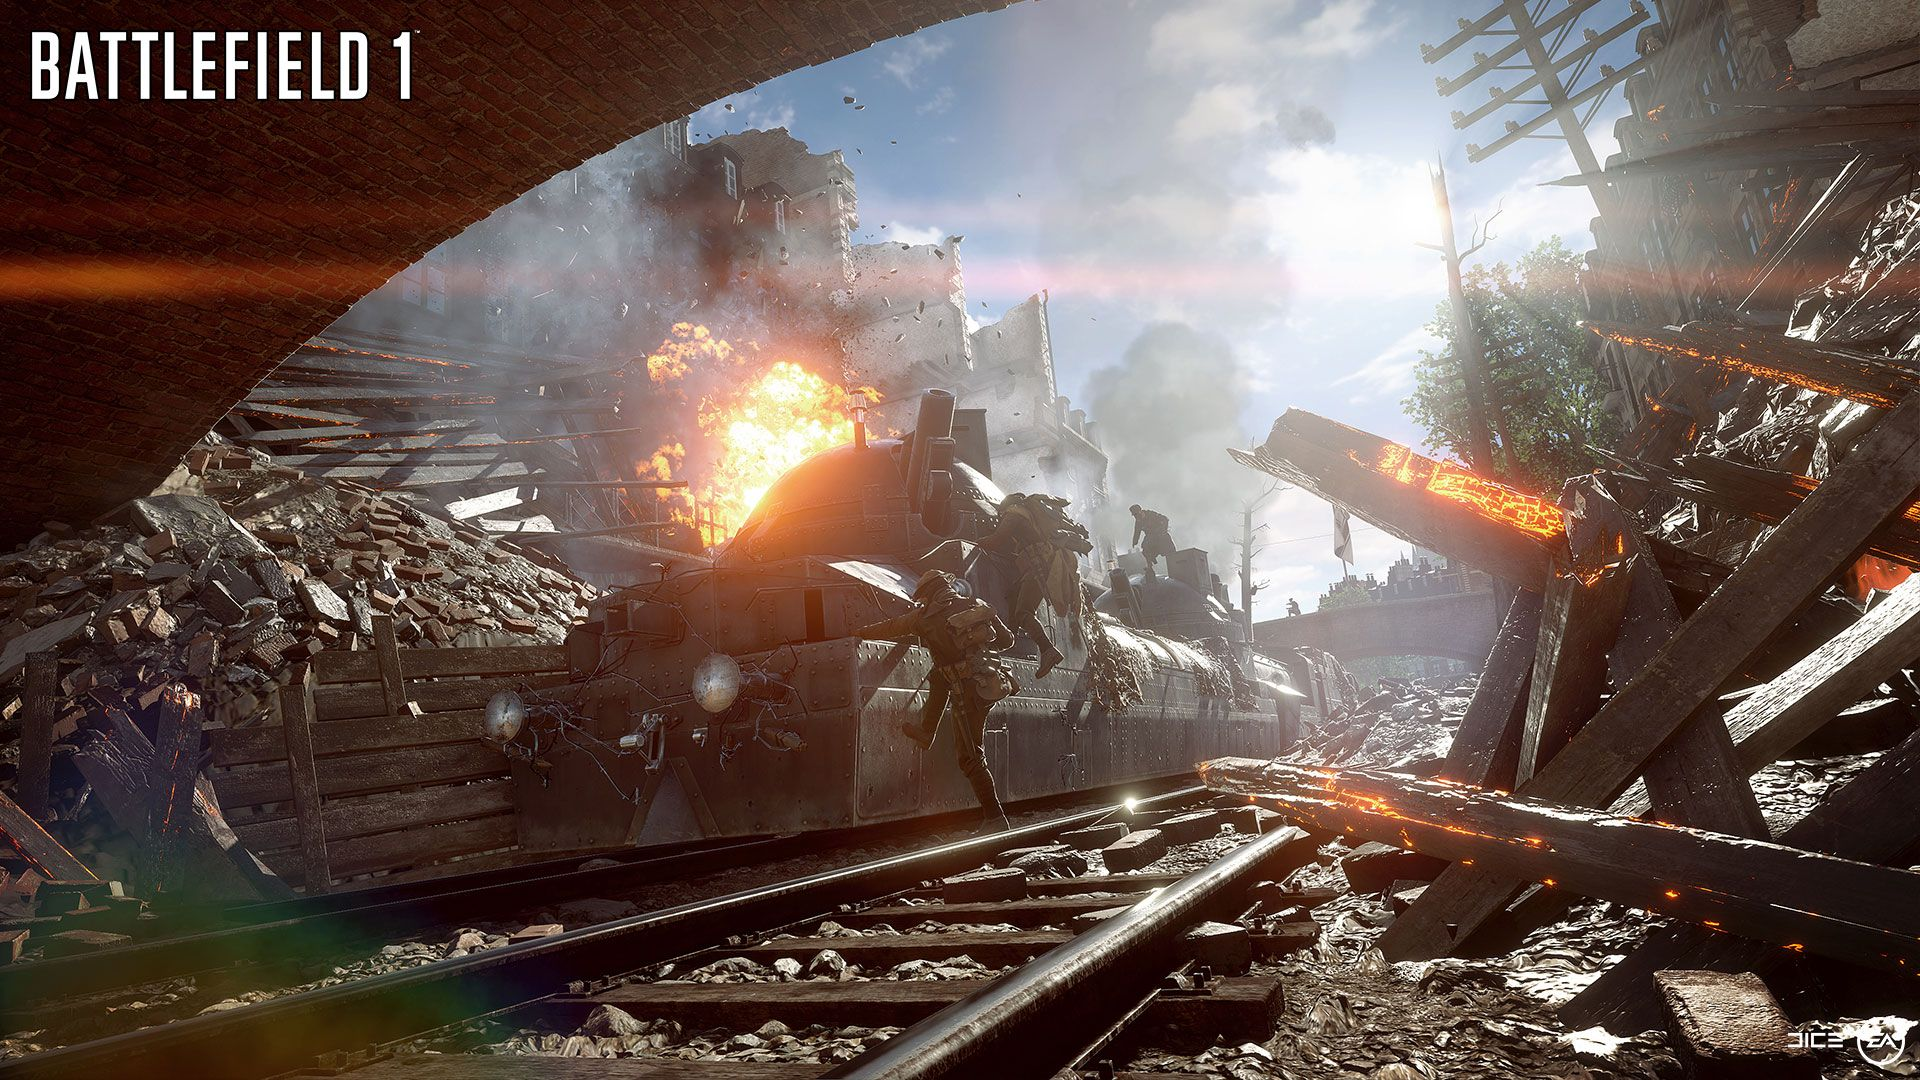 battlefield 1 wallpaper hd ~ sdeerwallpaper | game | pinterest